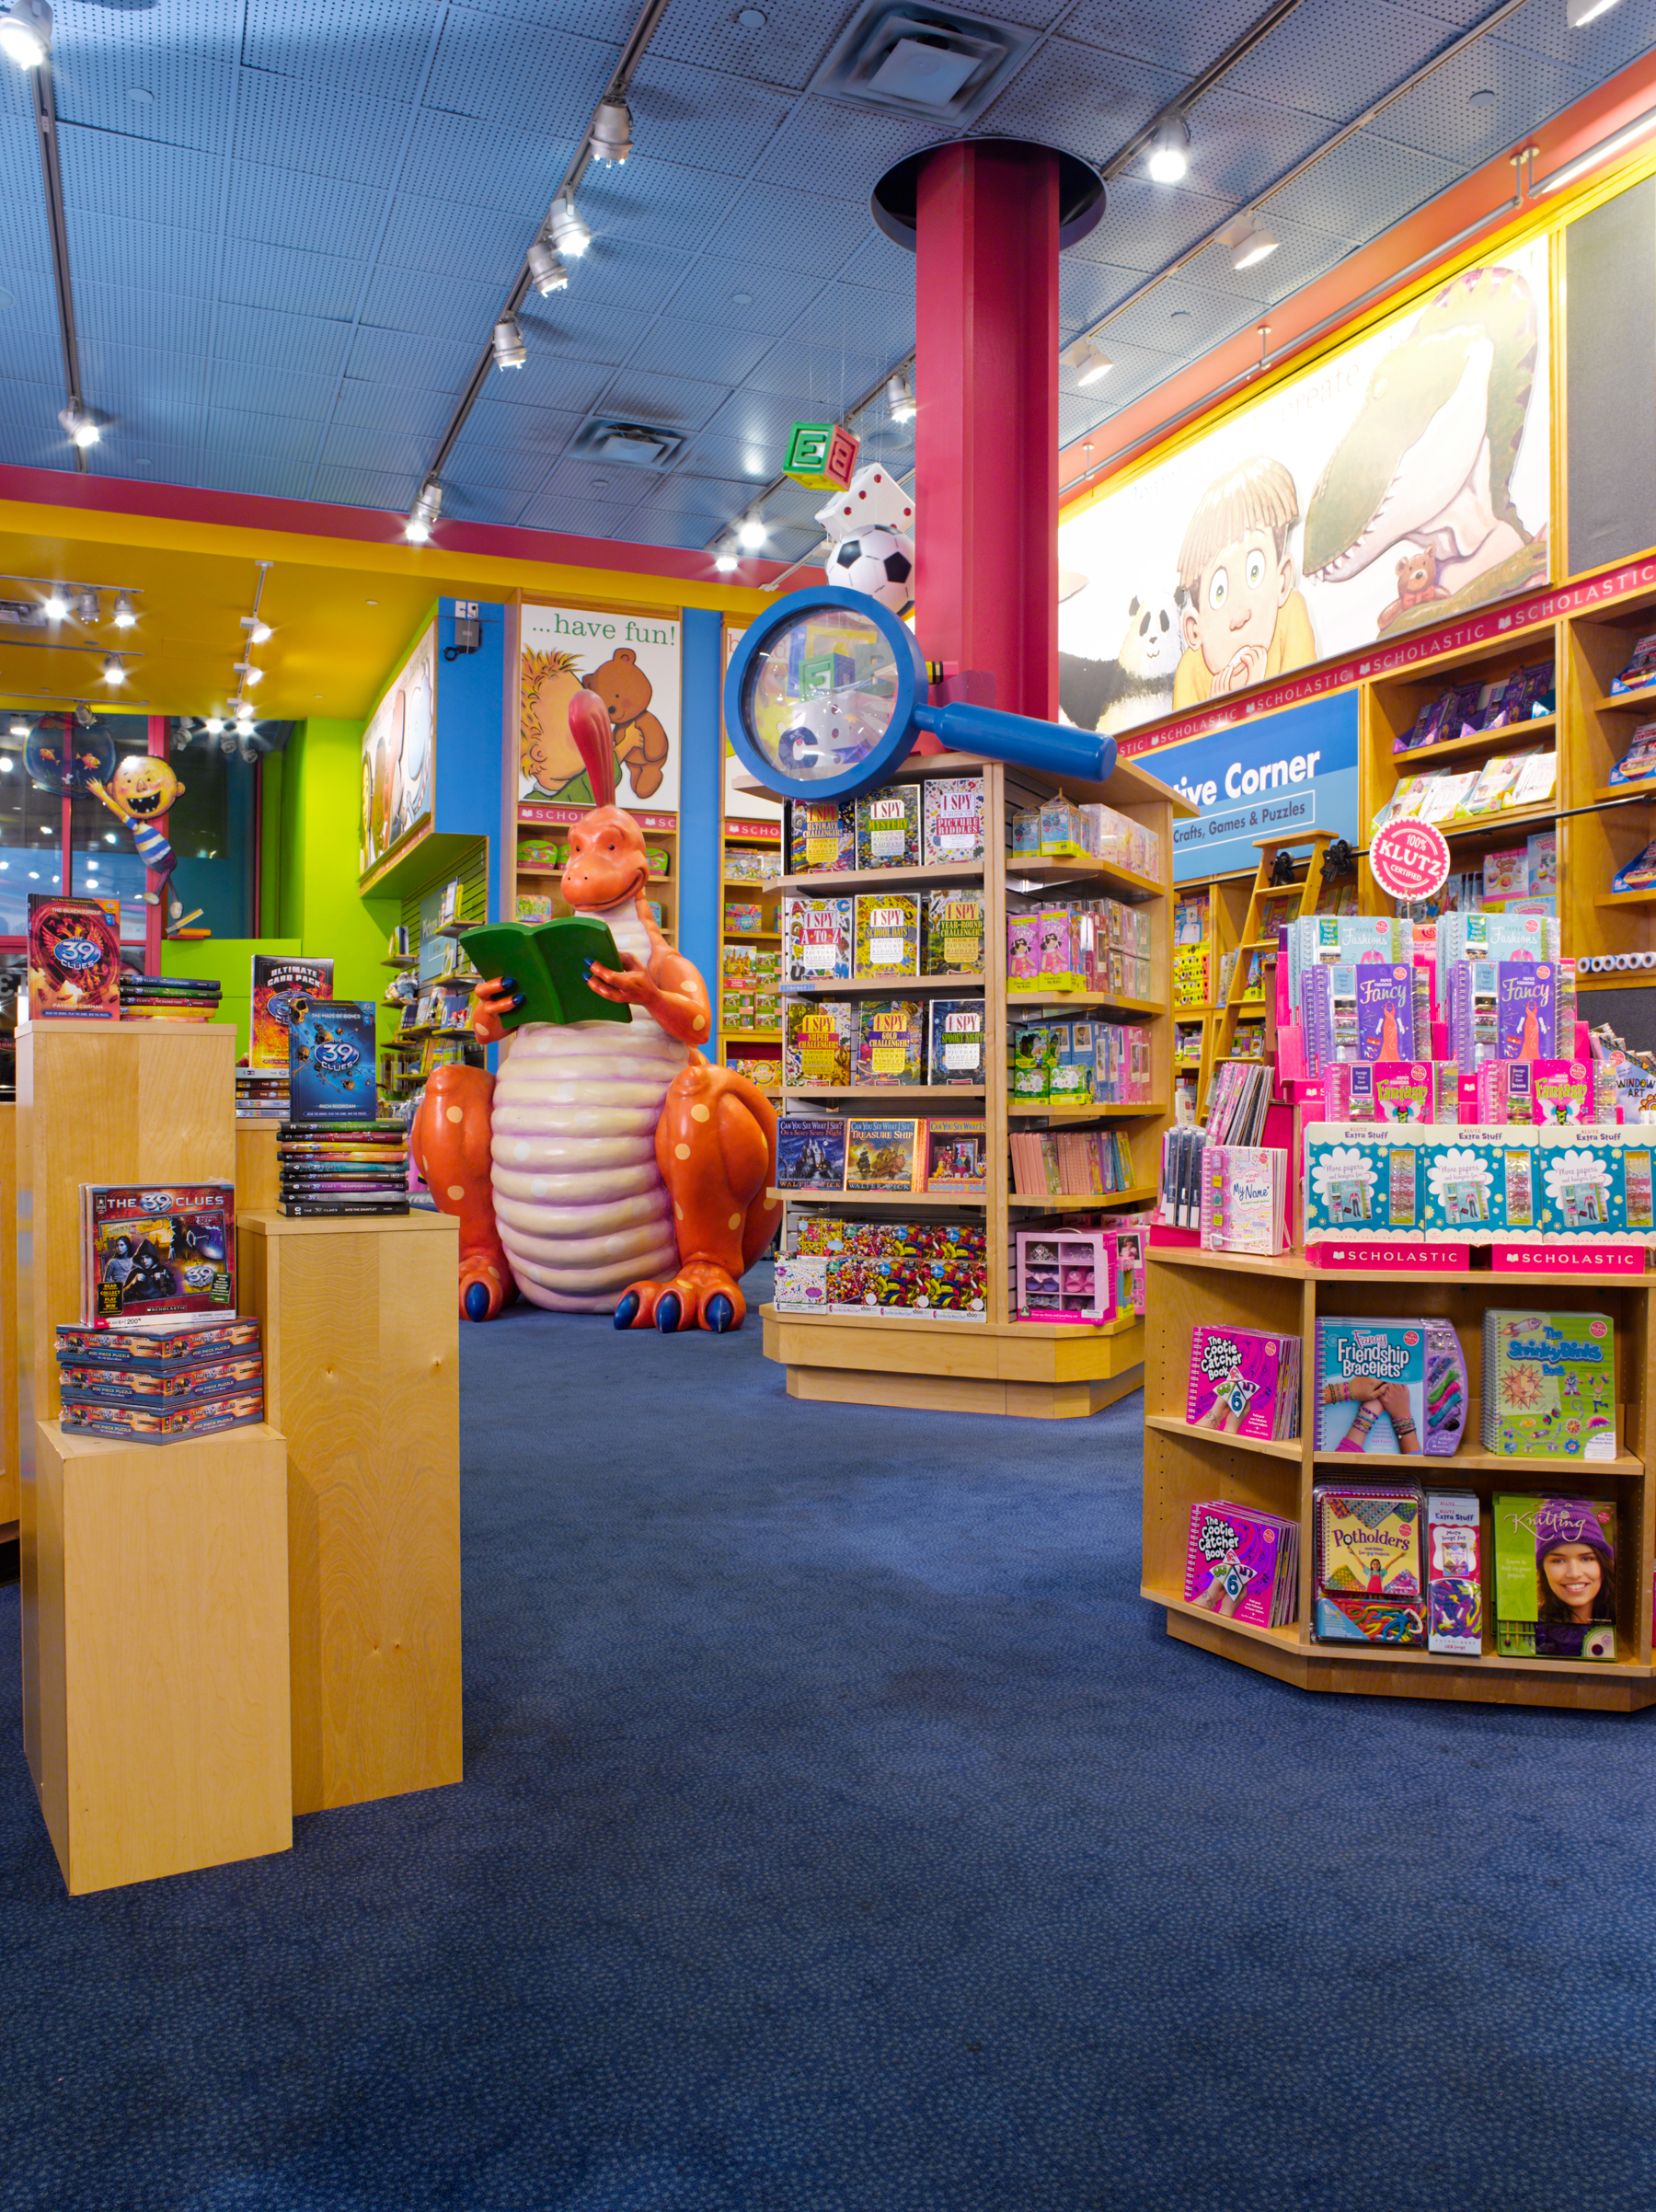 Shop at The Scholastic Store for the best books for children, educational resources for kids, crafts for kids, teachings resources and more. All purchases earn Scholastic Rewards for your nominated school. The Store, The Store.